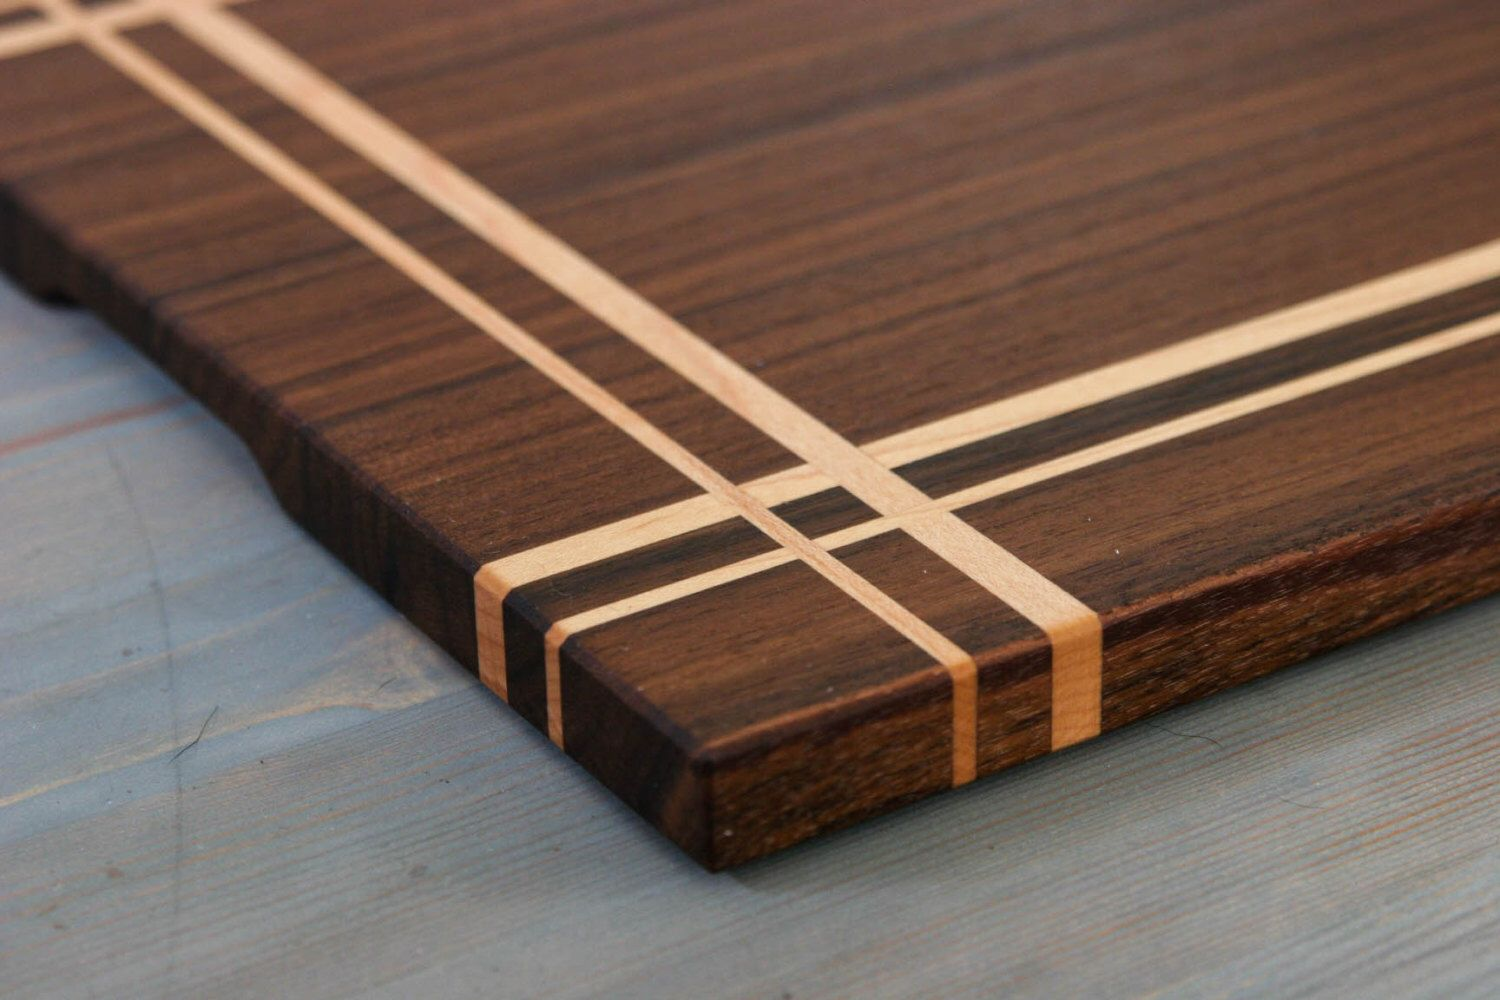 Walnut Maple Wood Cutting Board Or Serving In A Striped Pattern By